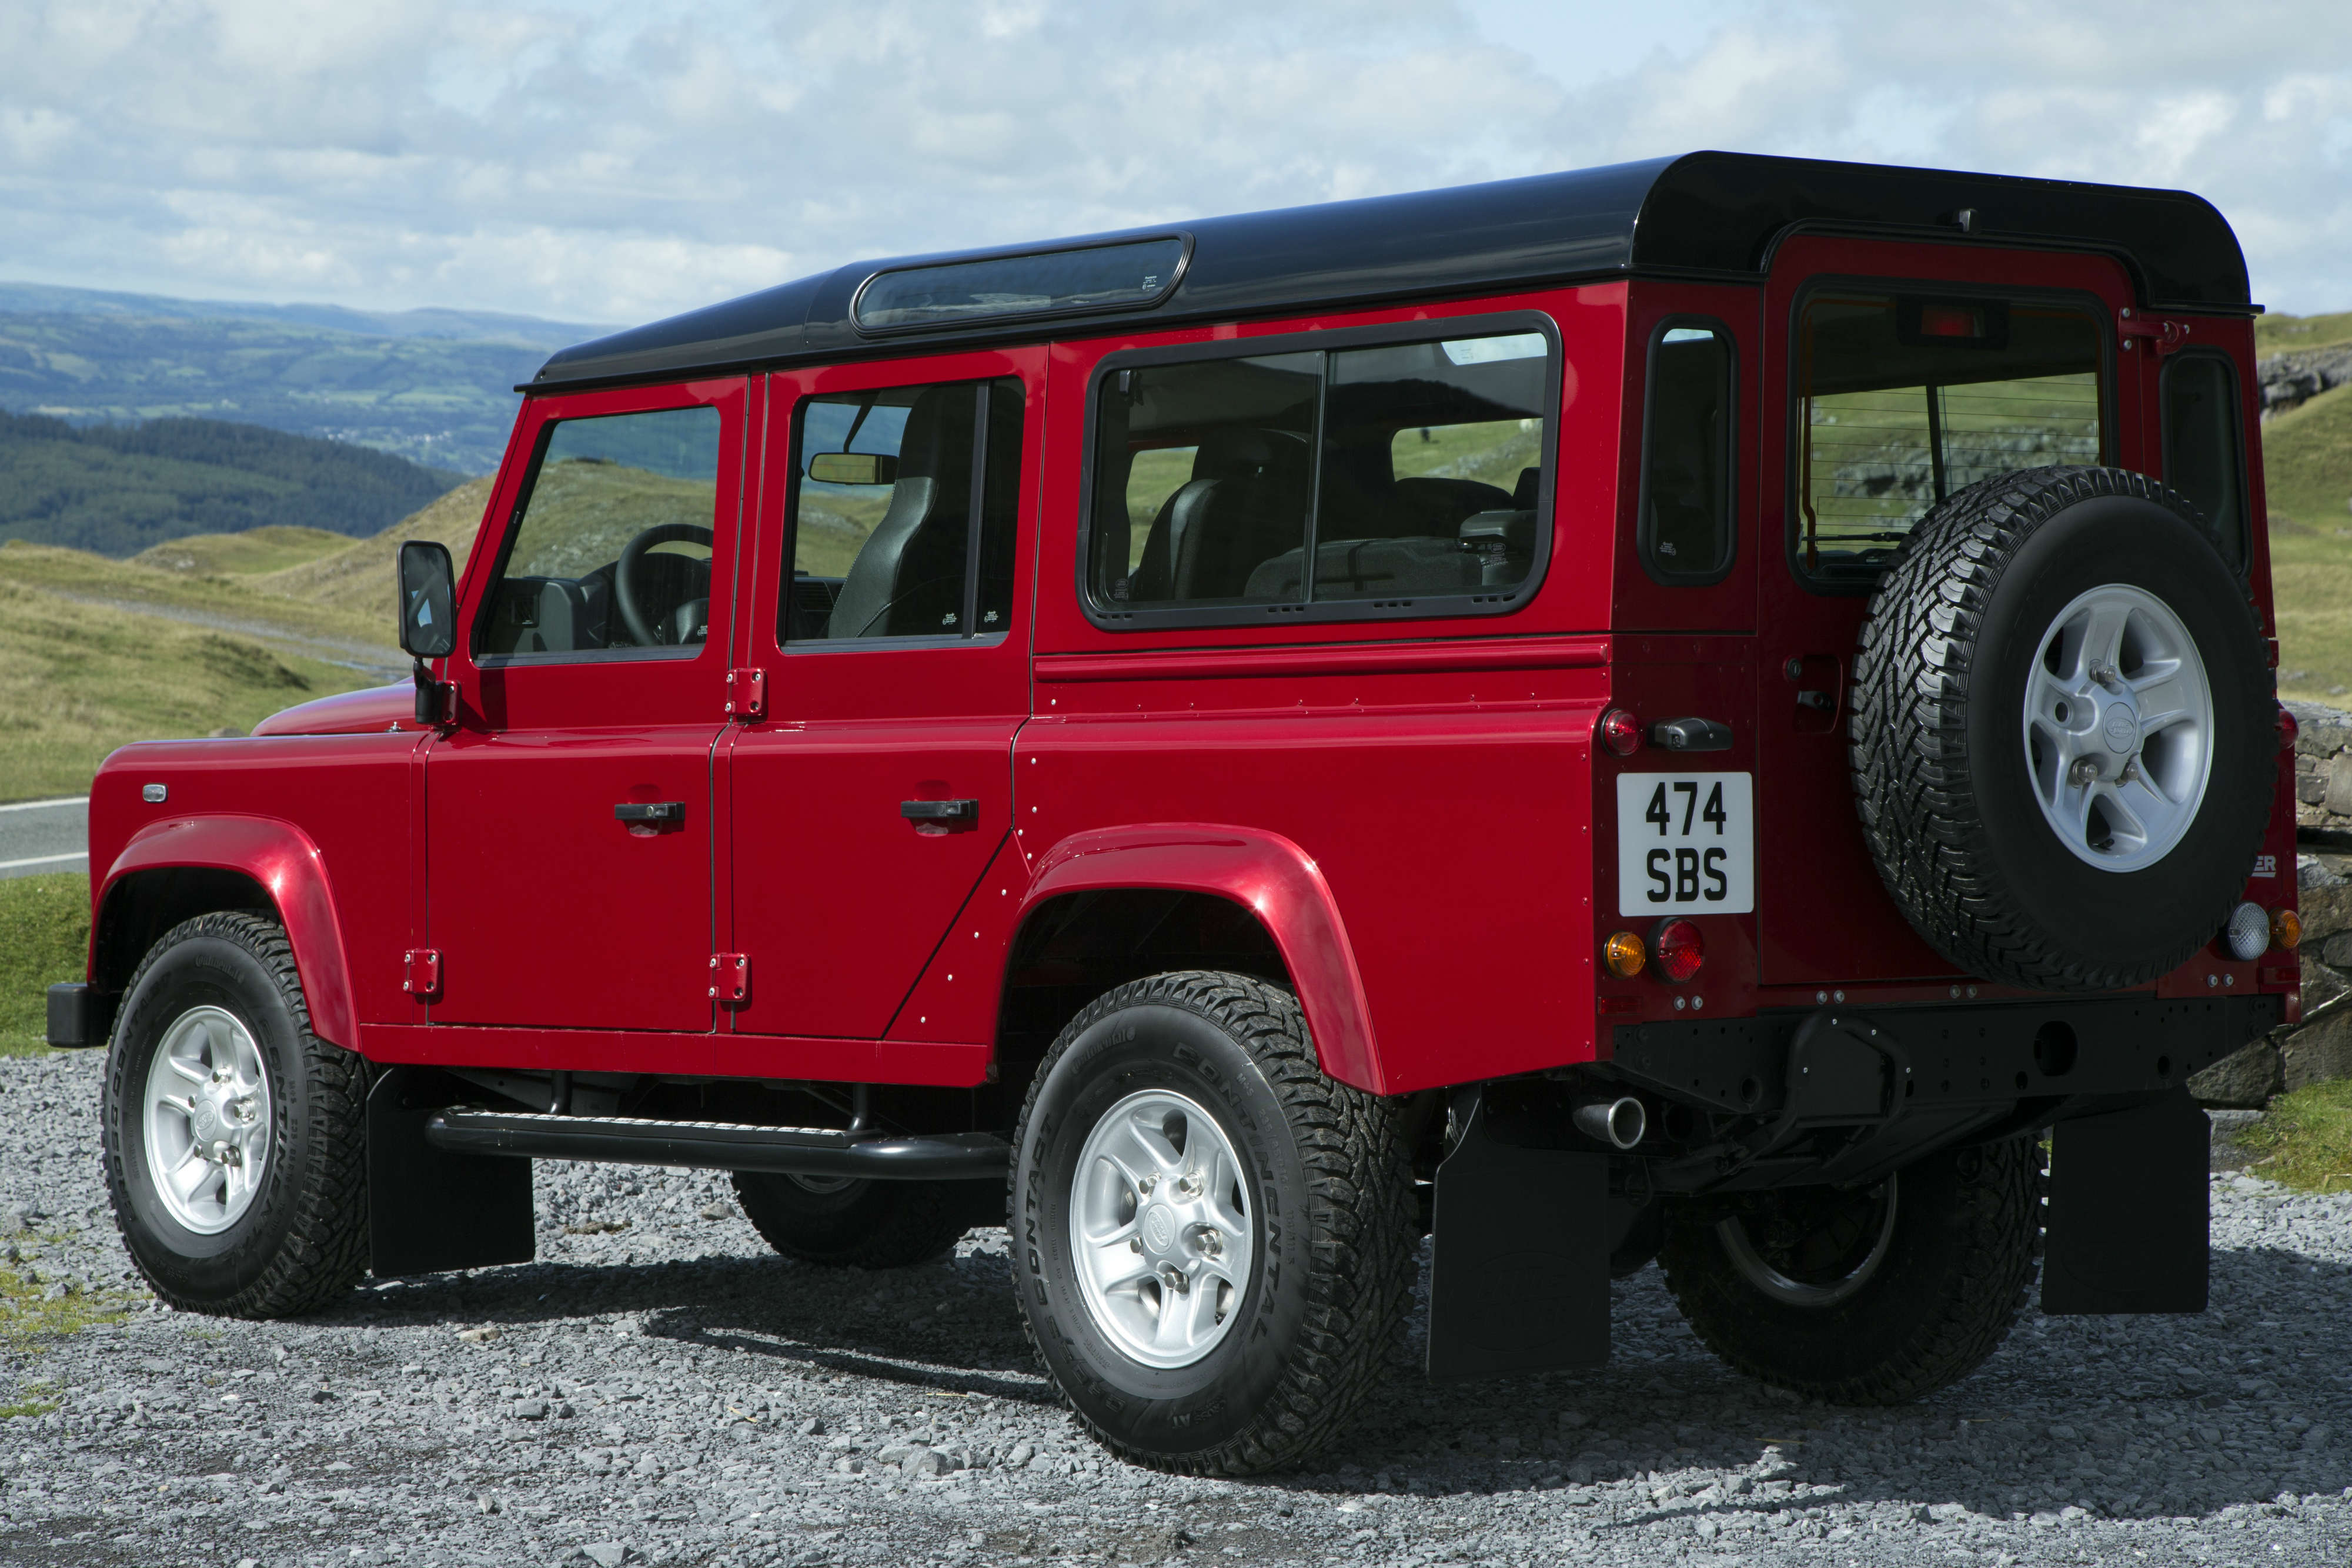 news rover buy can old defender revealed landrover an t one works land new a wait for